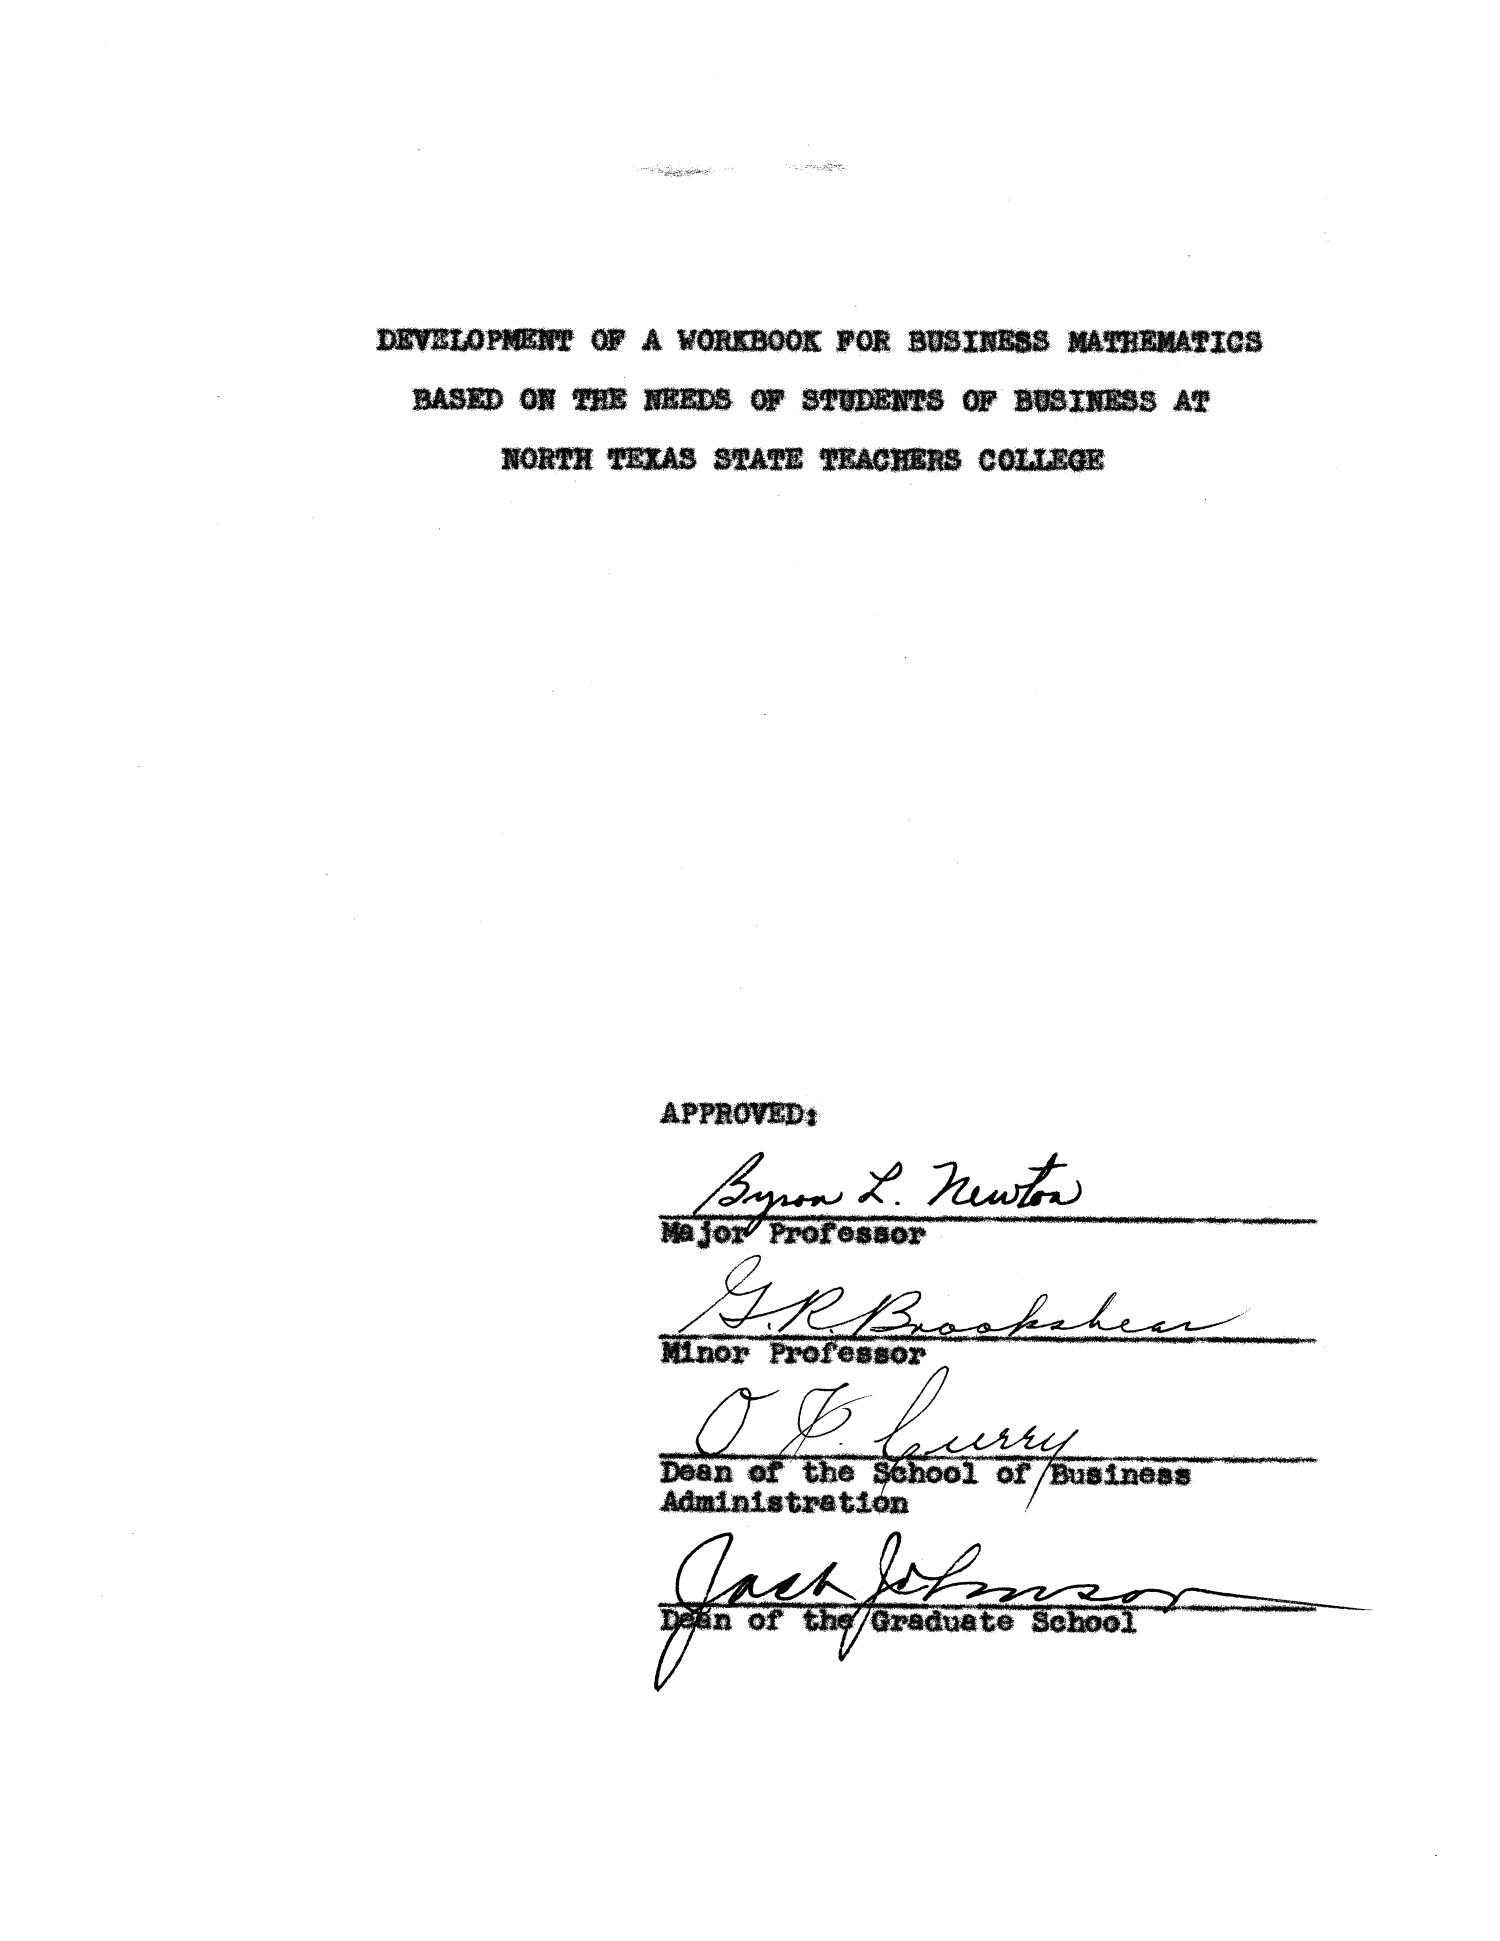 Development of a Workbook for Business Mathematics Based on the Needs of Students of Business at North Texas State Teachers College                                                                                                      Title Page